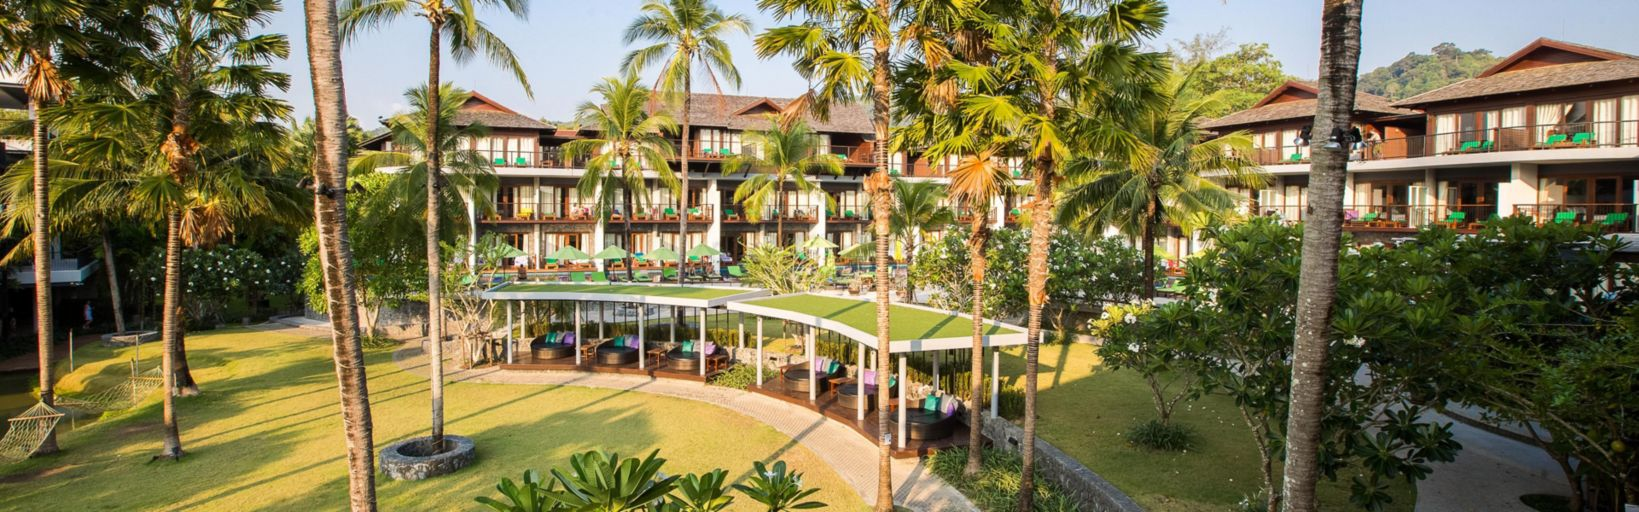 Hotel Garden Welcome To Holiday Inn Resort Krabi Ao Nang Beach